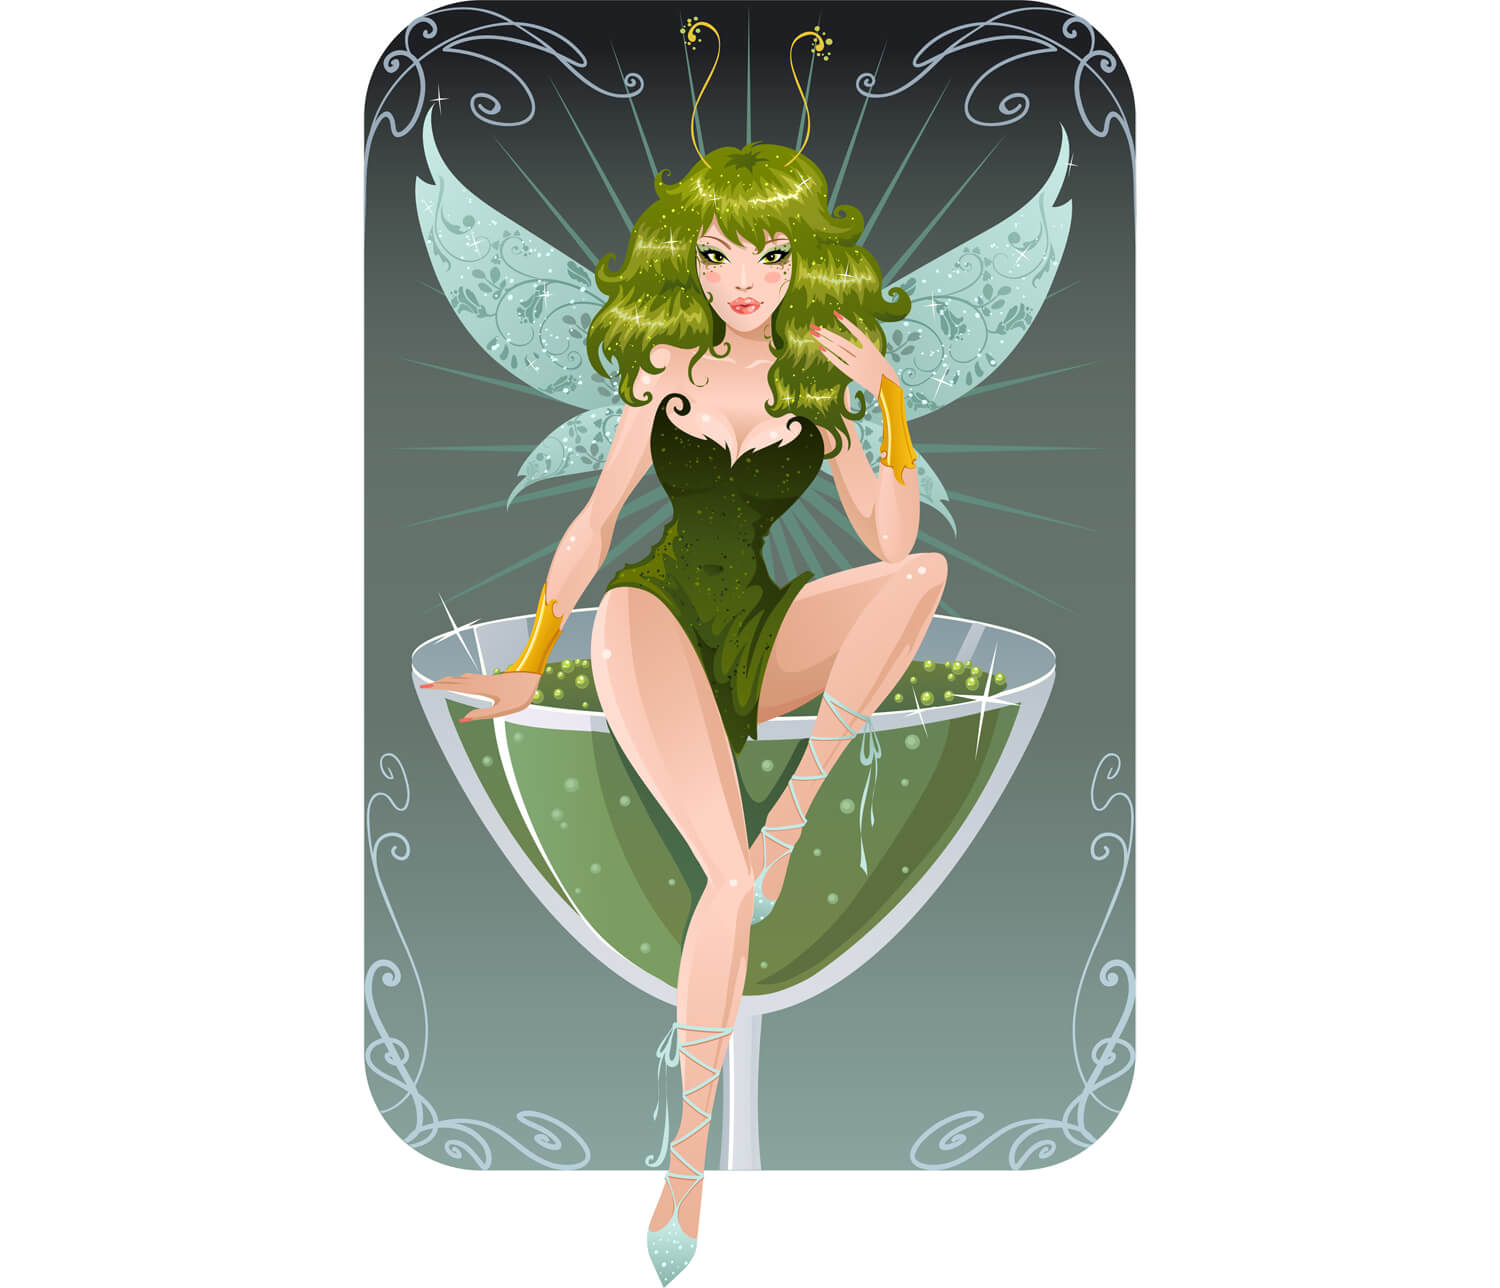 """The Green Fairy"" Image Associated with Absinthe"